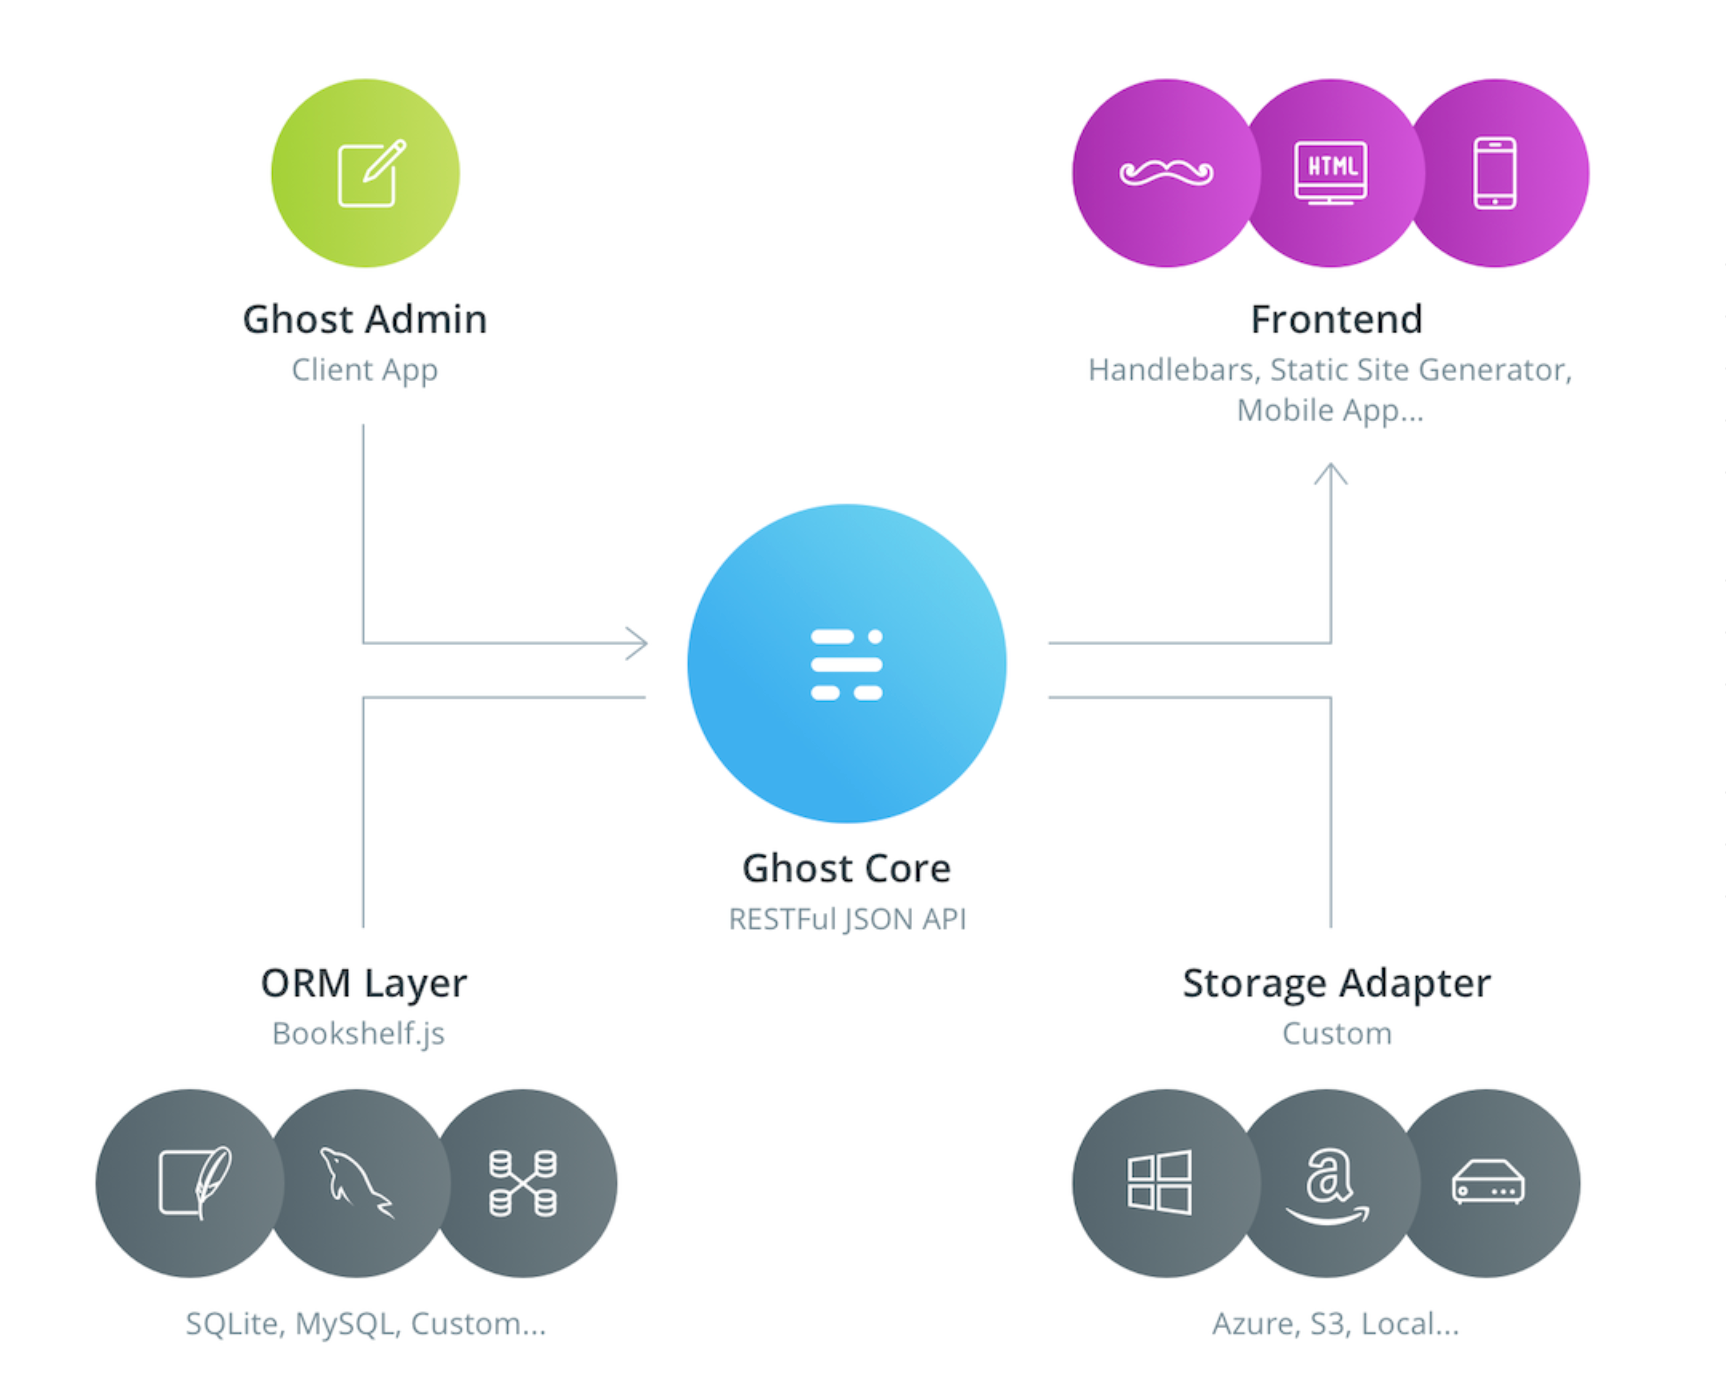 Ghost.io architecture